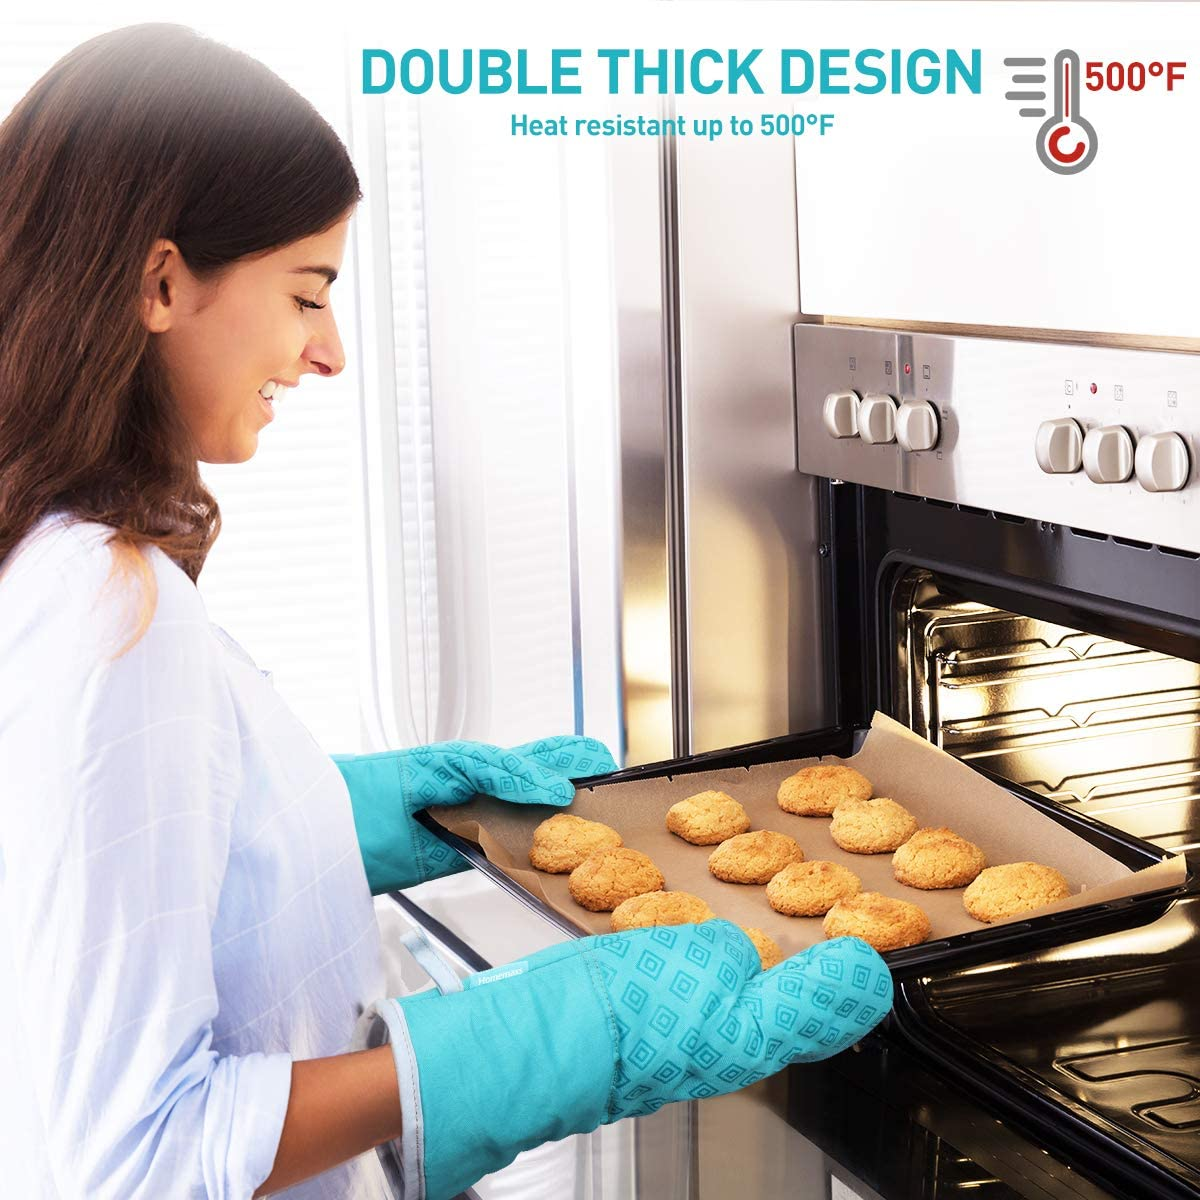 Oven Mitts and Pot Holders 4pcs Set, Heat Resistant Non-Slip Food Grade Kitchen Mitten Silicone Cooking Gloves (Turquoise)